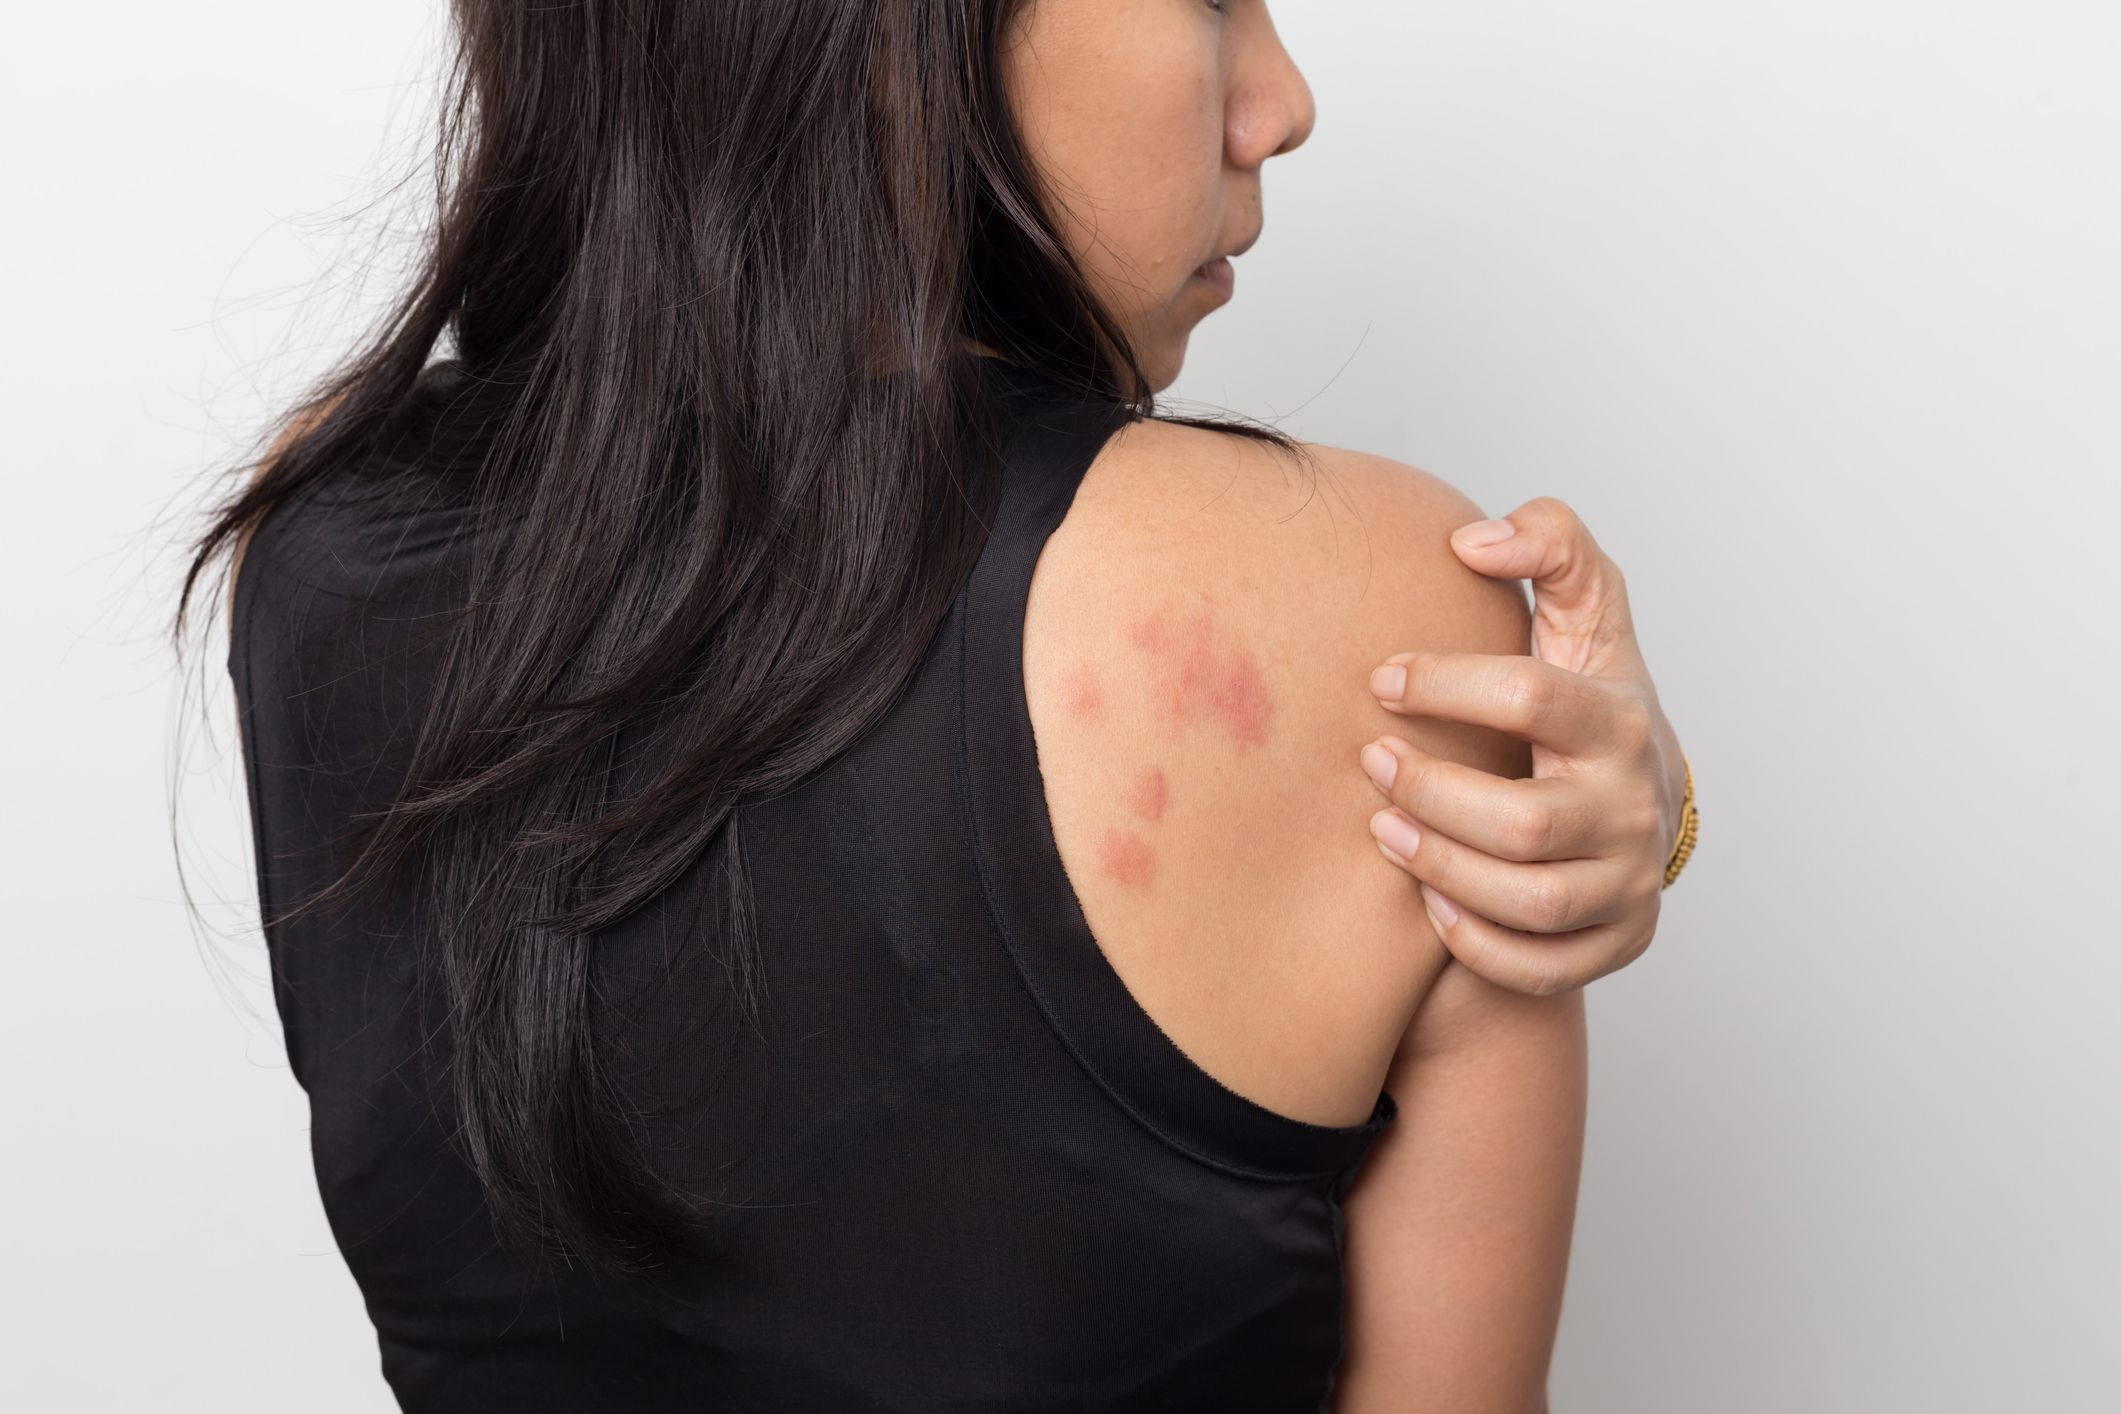 Could Anxiety Be Giving You Hives?